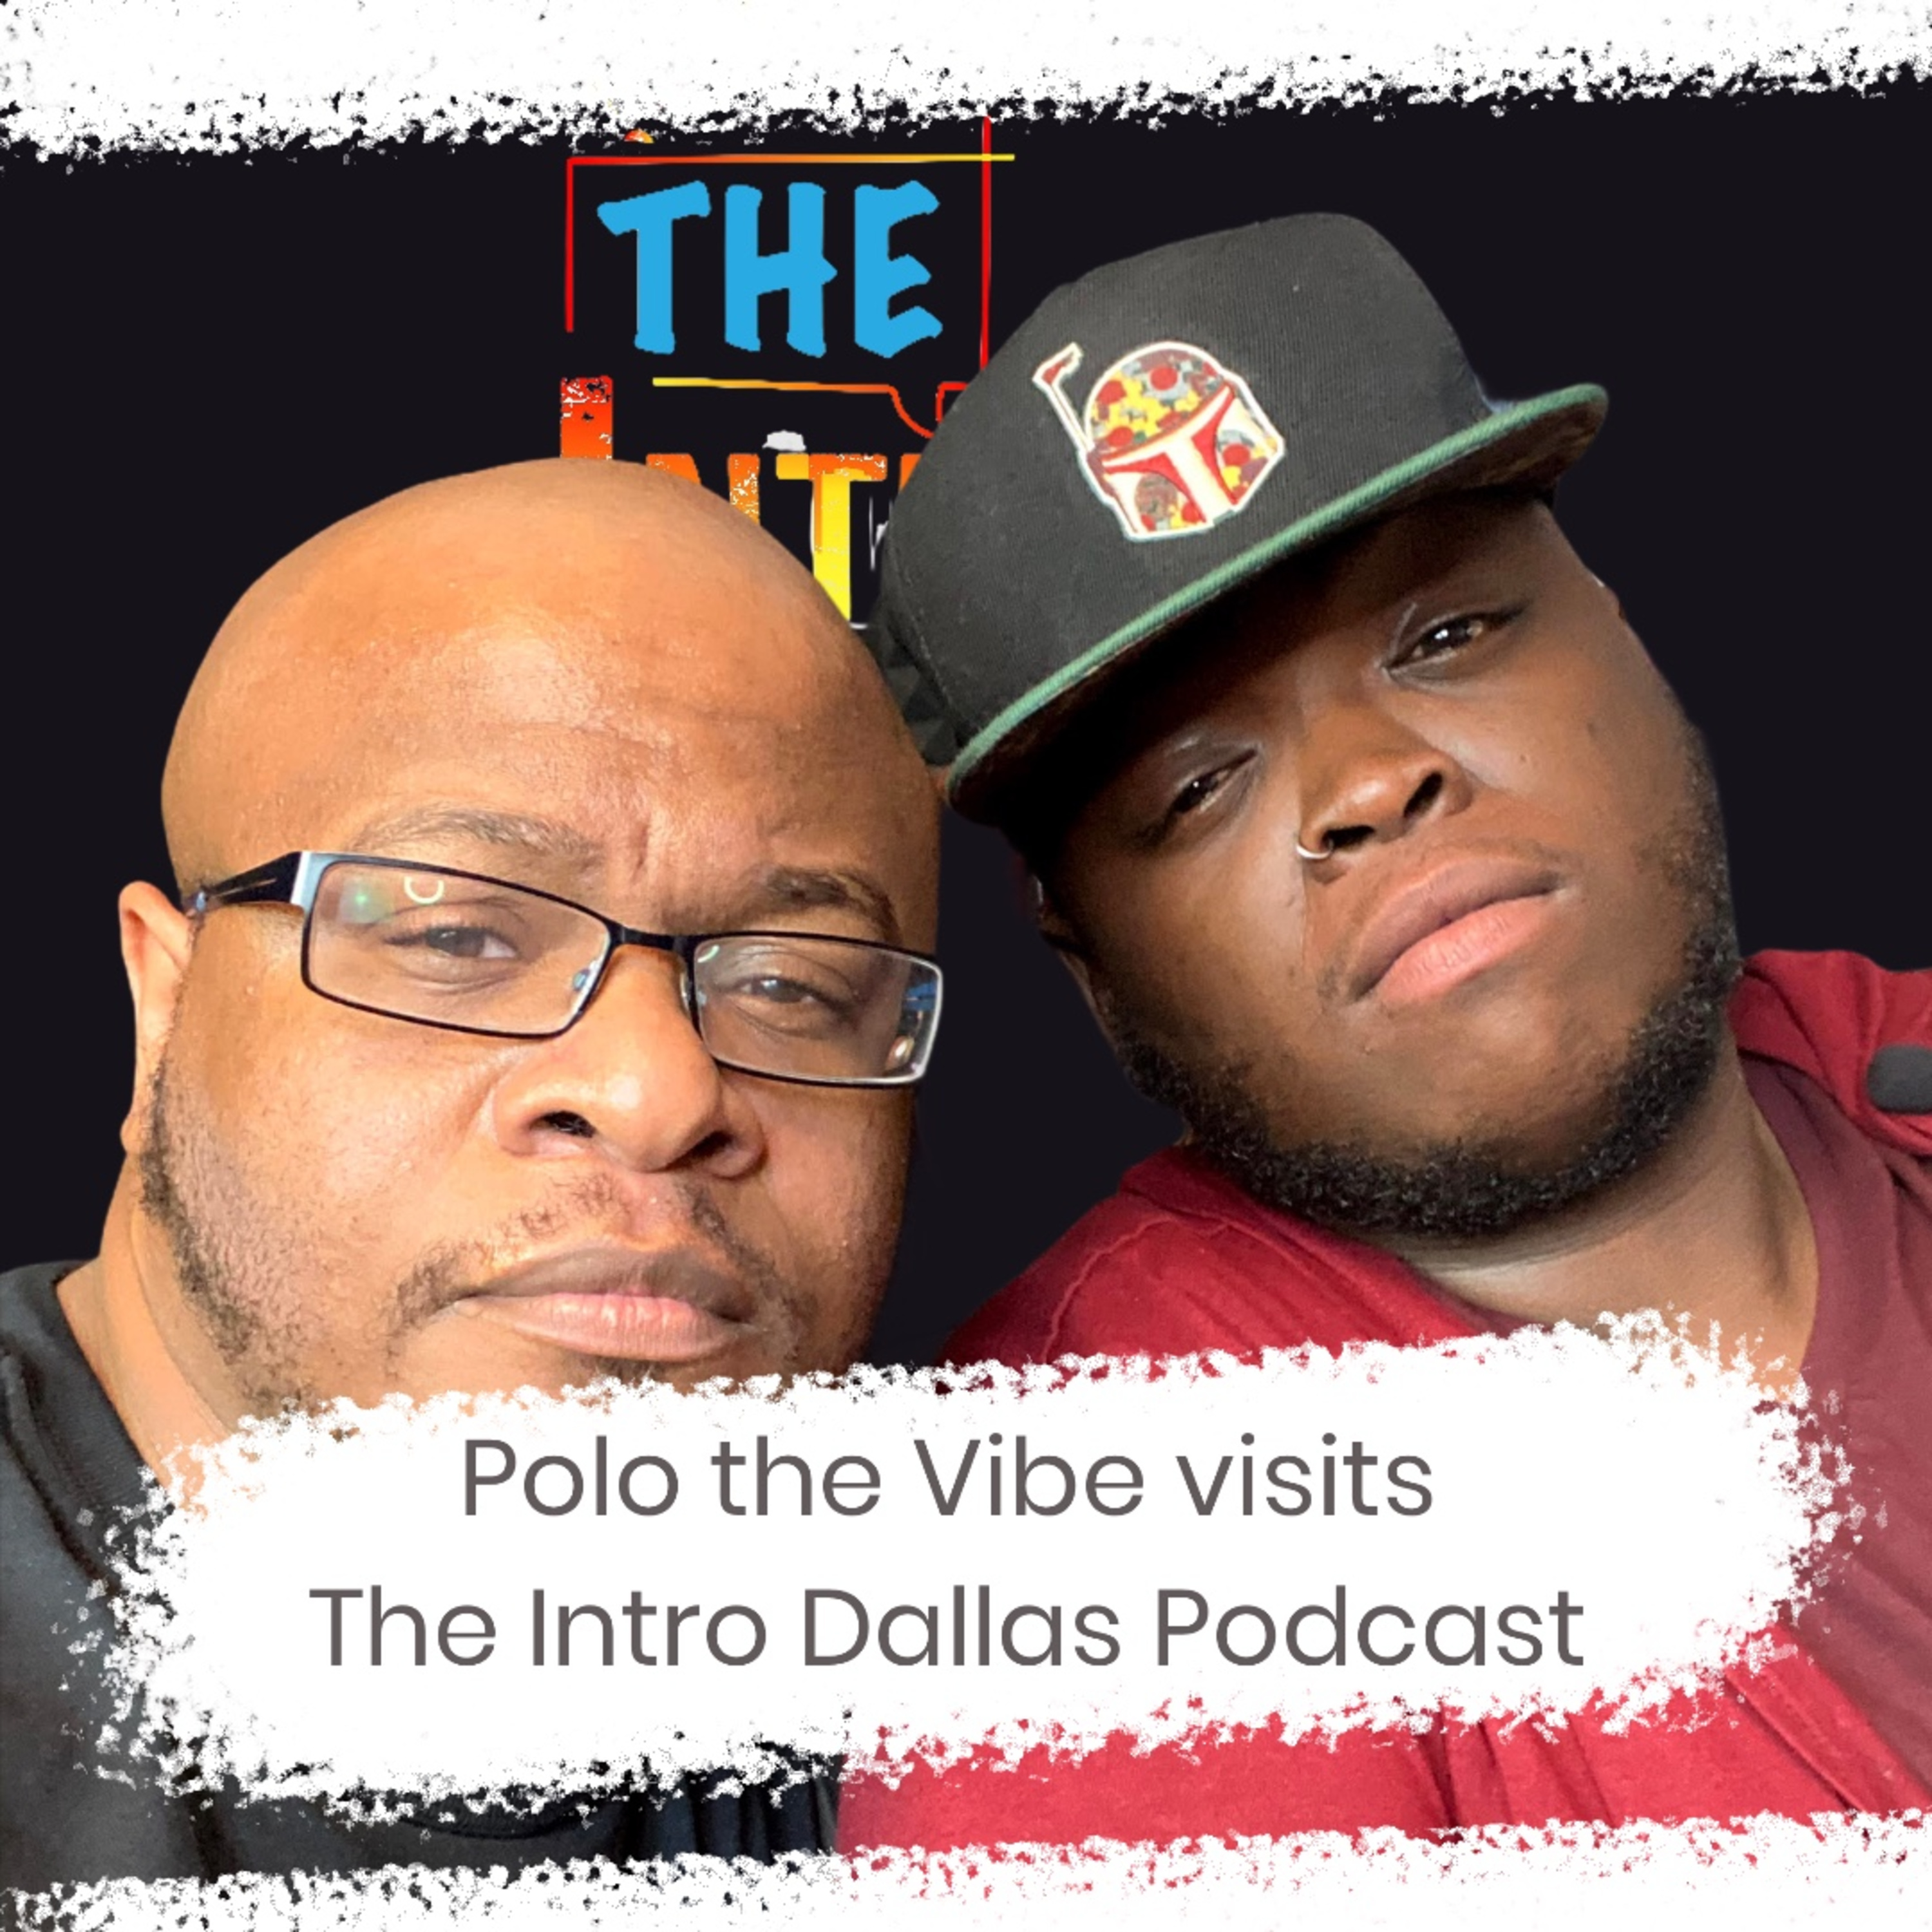 S2Ep2: Polo the Vibe Visits The Intro Dallas Podcast